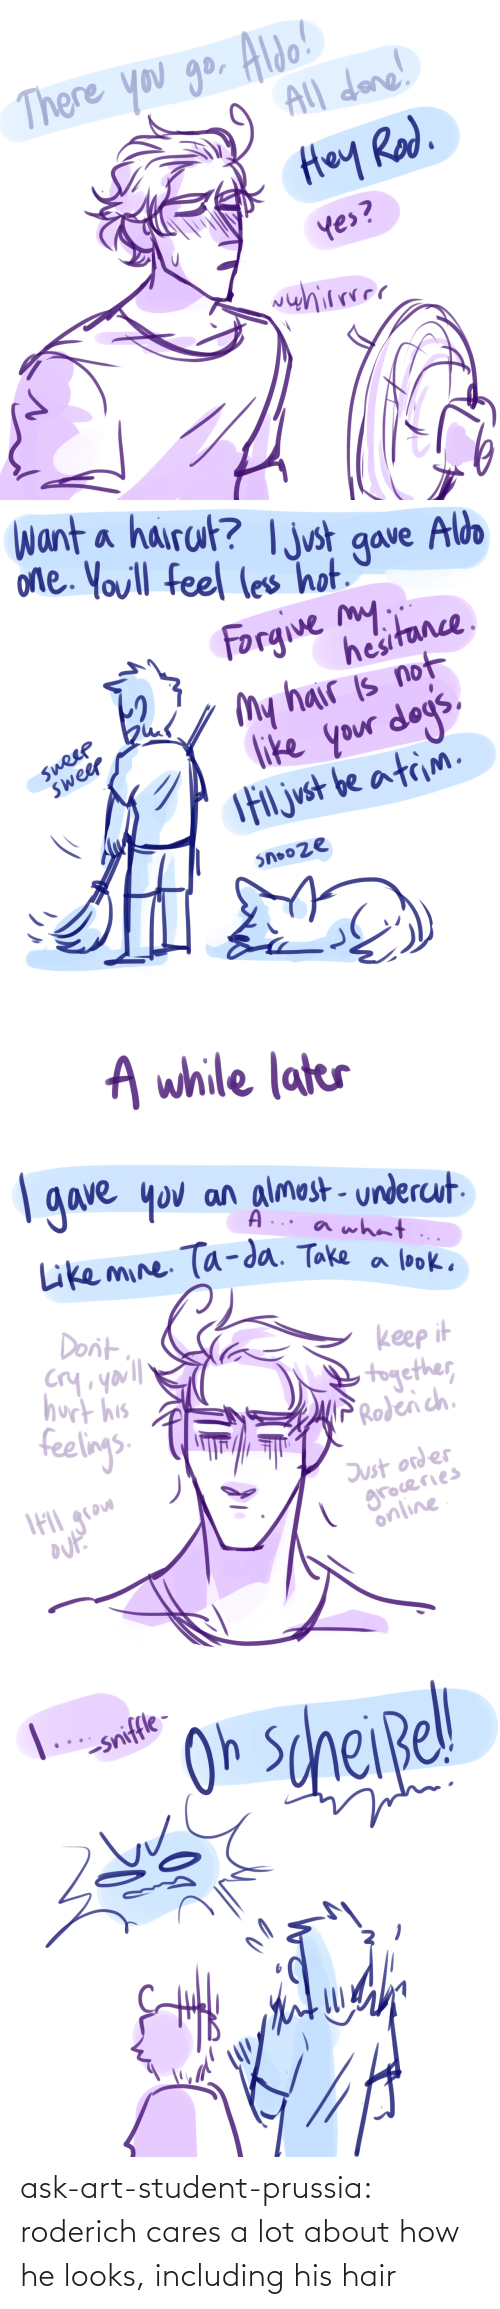 His: ask-art-student-prussia:  roderich cares a lot about how he looks, including his hair